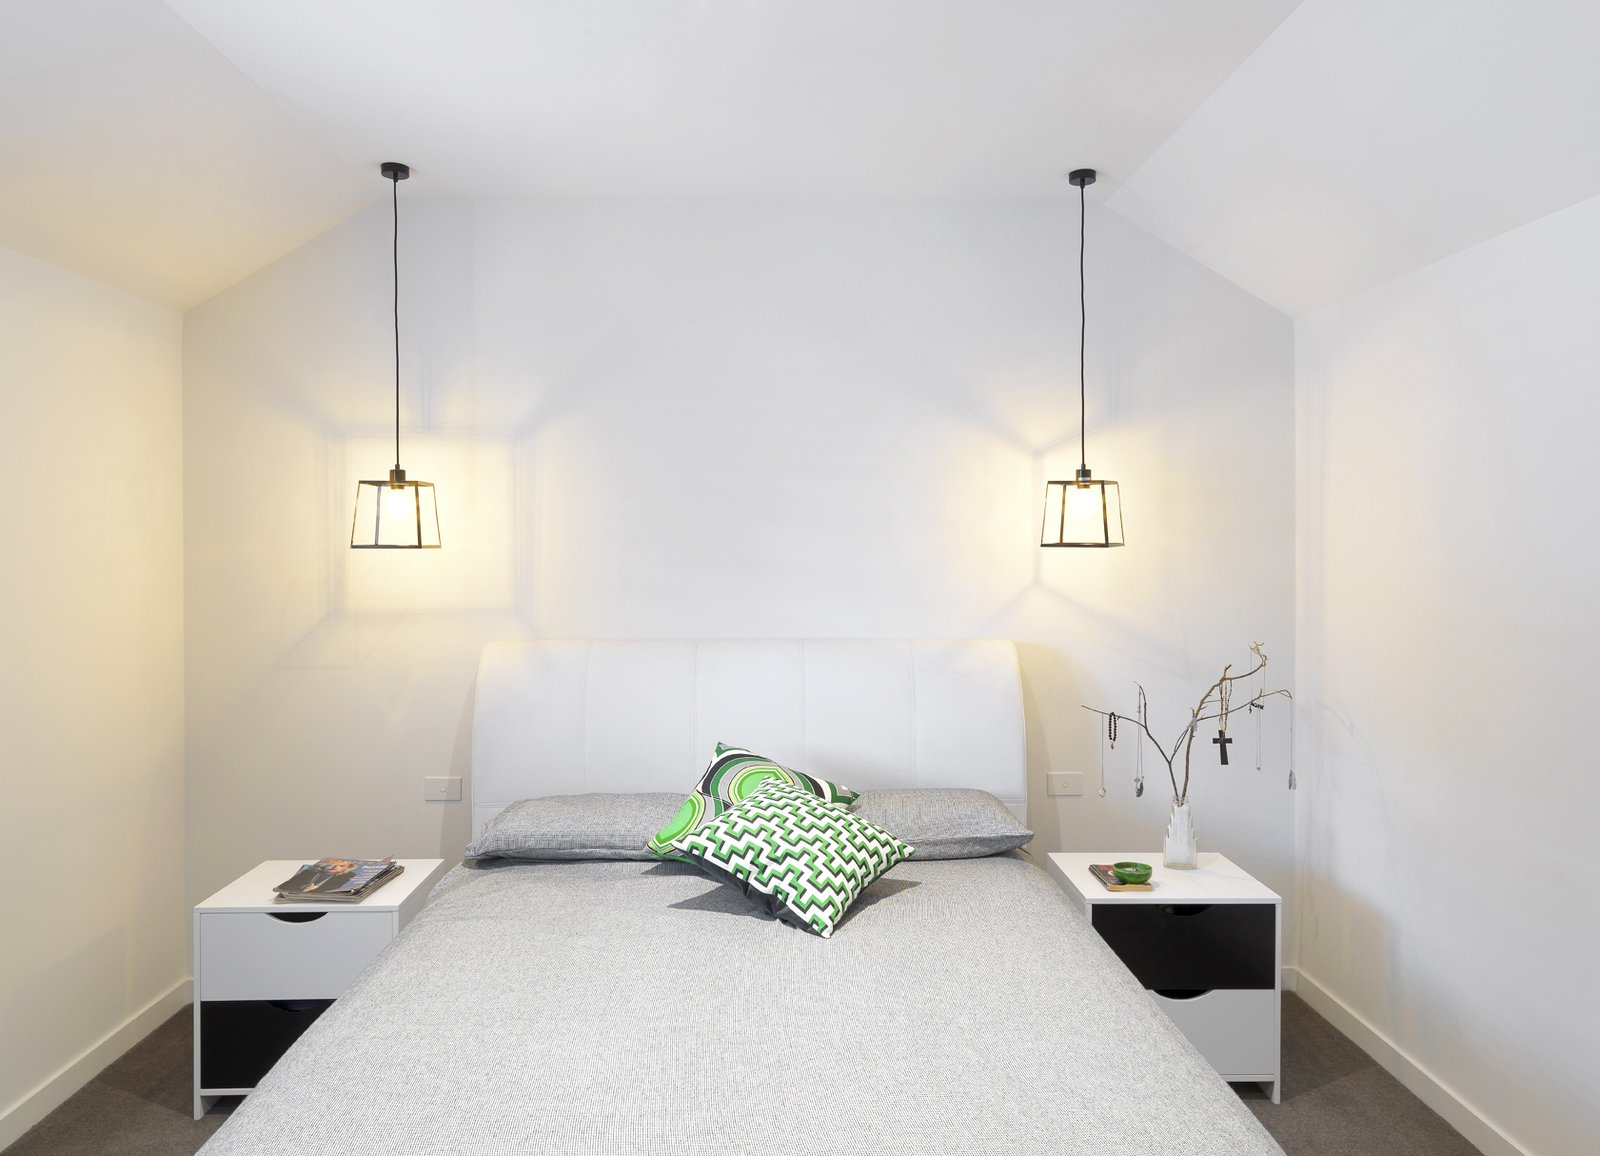 The renovated master bedroom preserves the slope of the original vaulted ceiling. A tufted headboard and suspended Q-BEE steel pendant lights accent the simple and elegant space.  Bedrooms by Dwell from 1850s Prefab Cottage from Boston Finds New Life in Australia